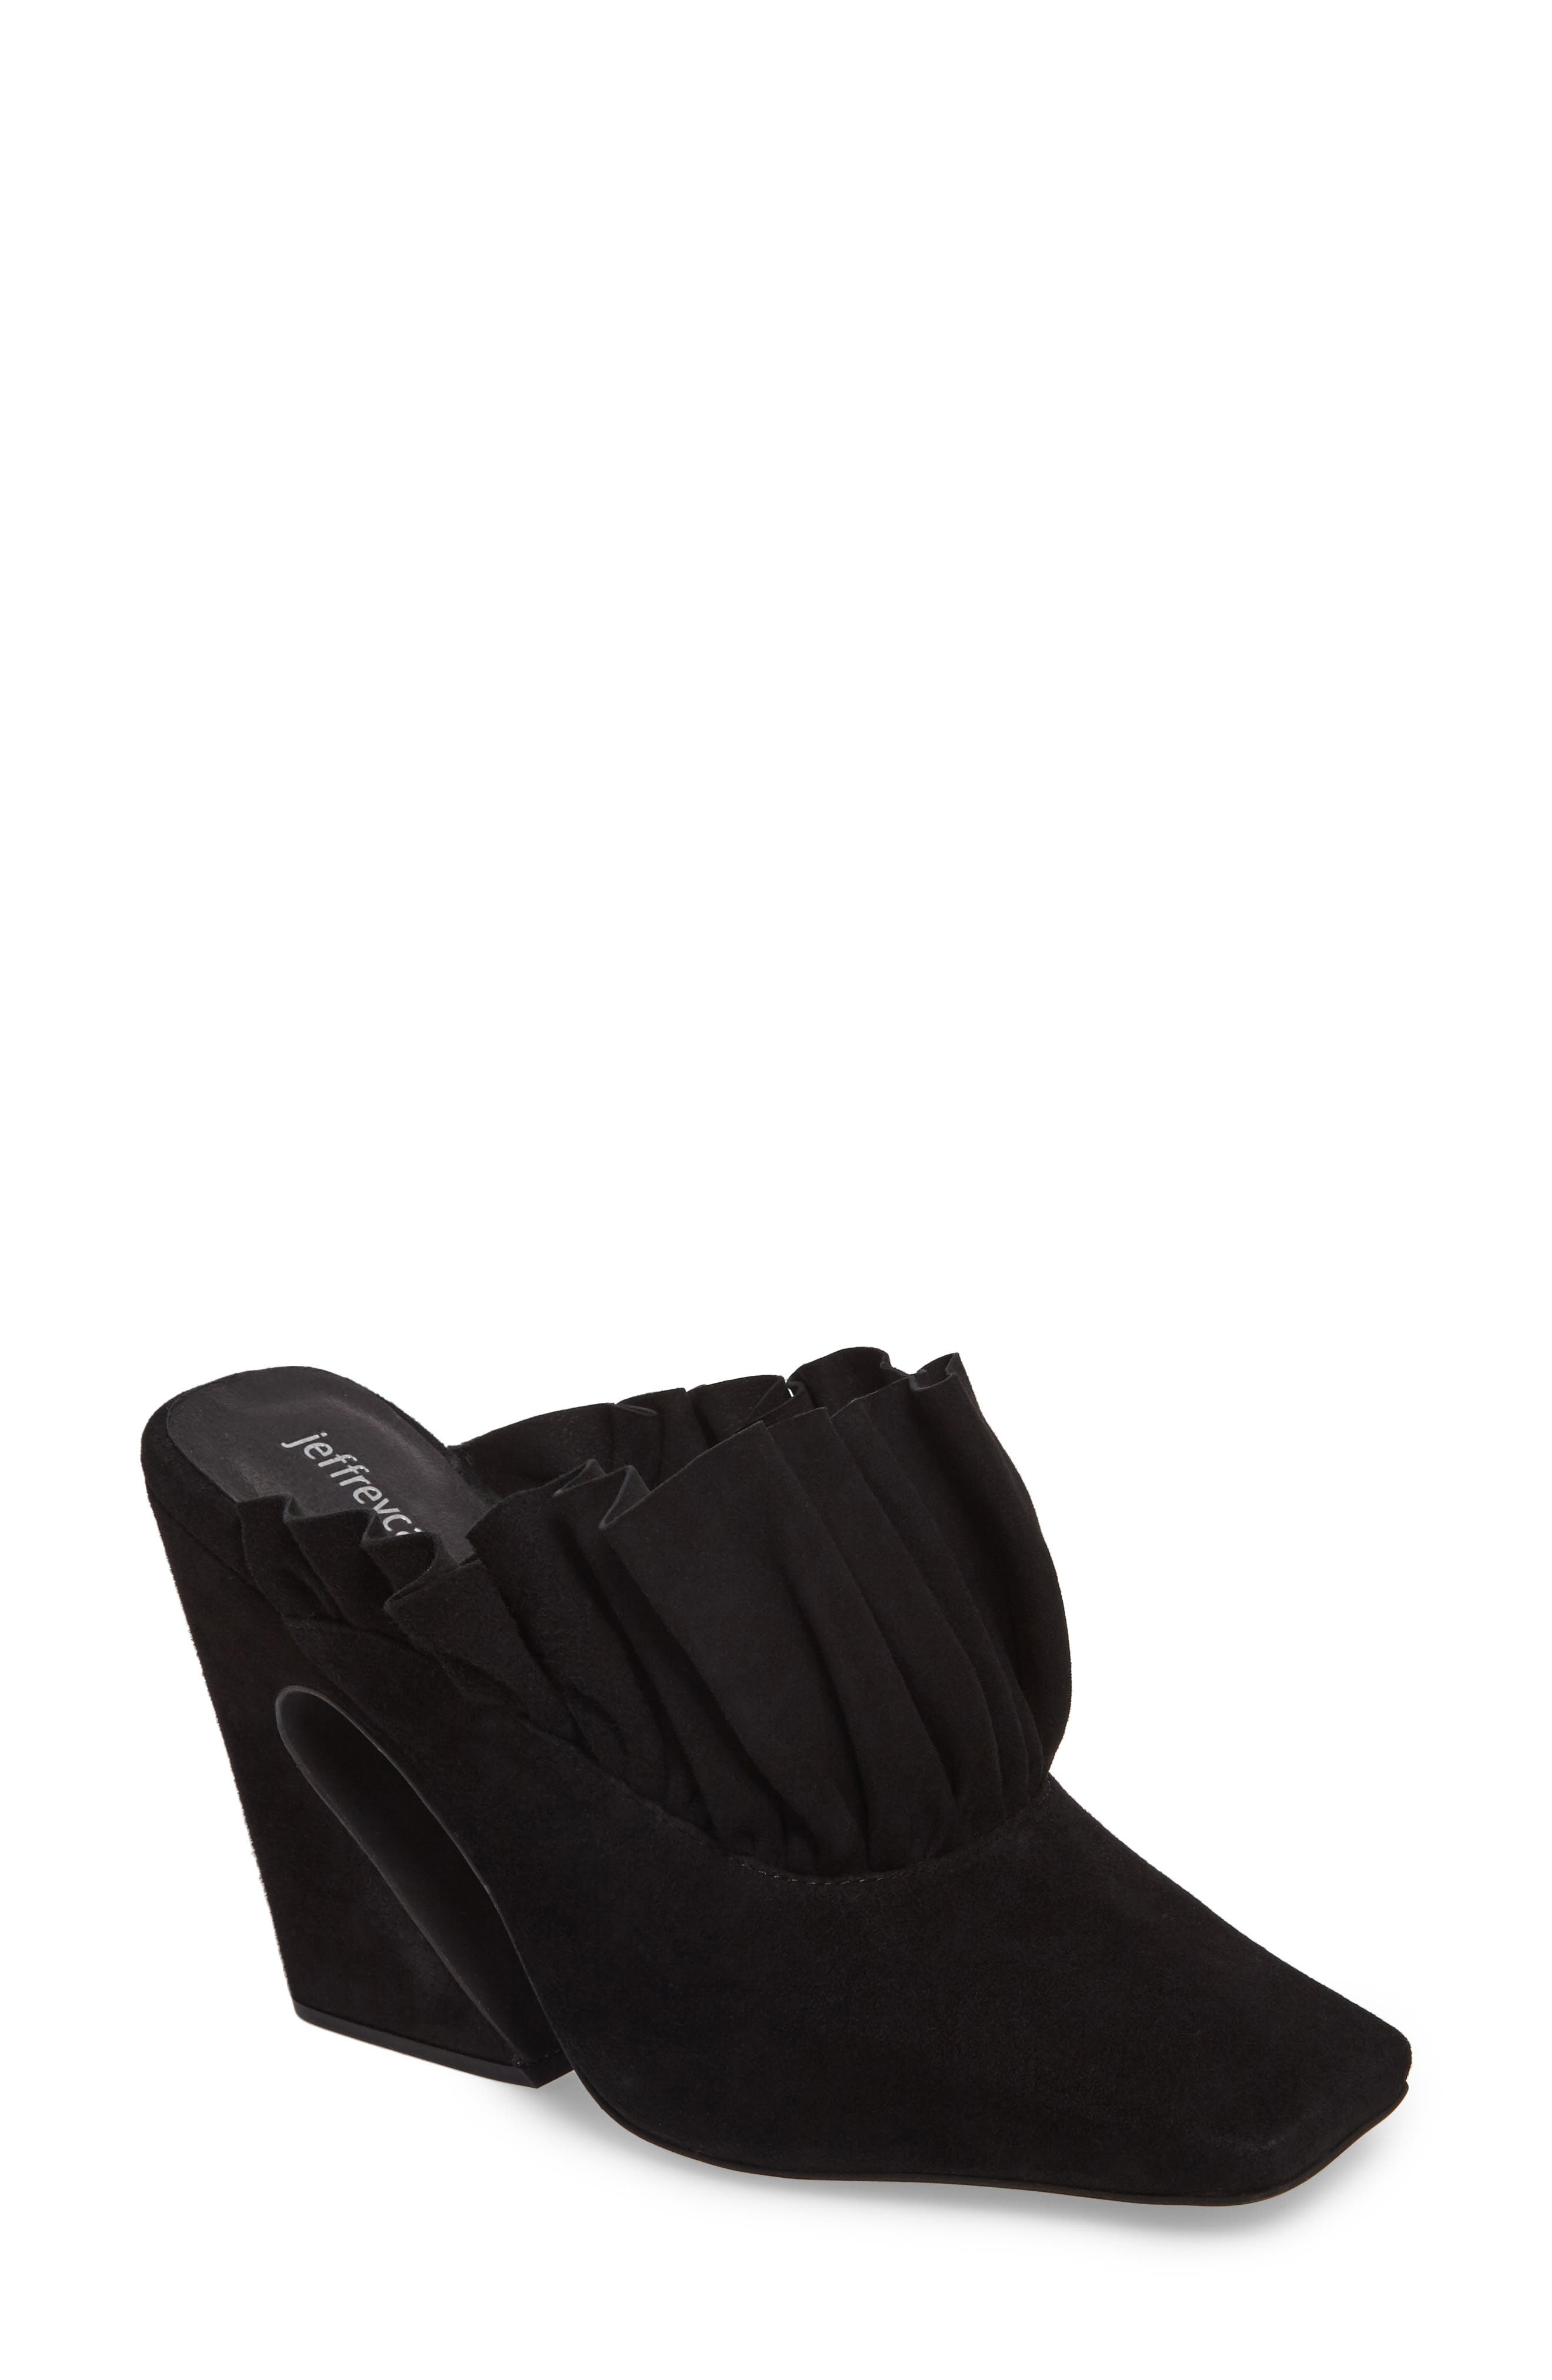 Alternate Image 1 Selected - Jeffrey Campbell Astura Ruffle Mule (Women)